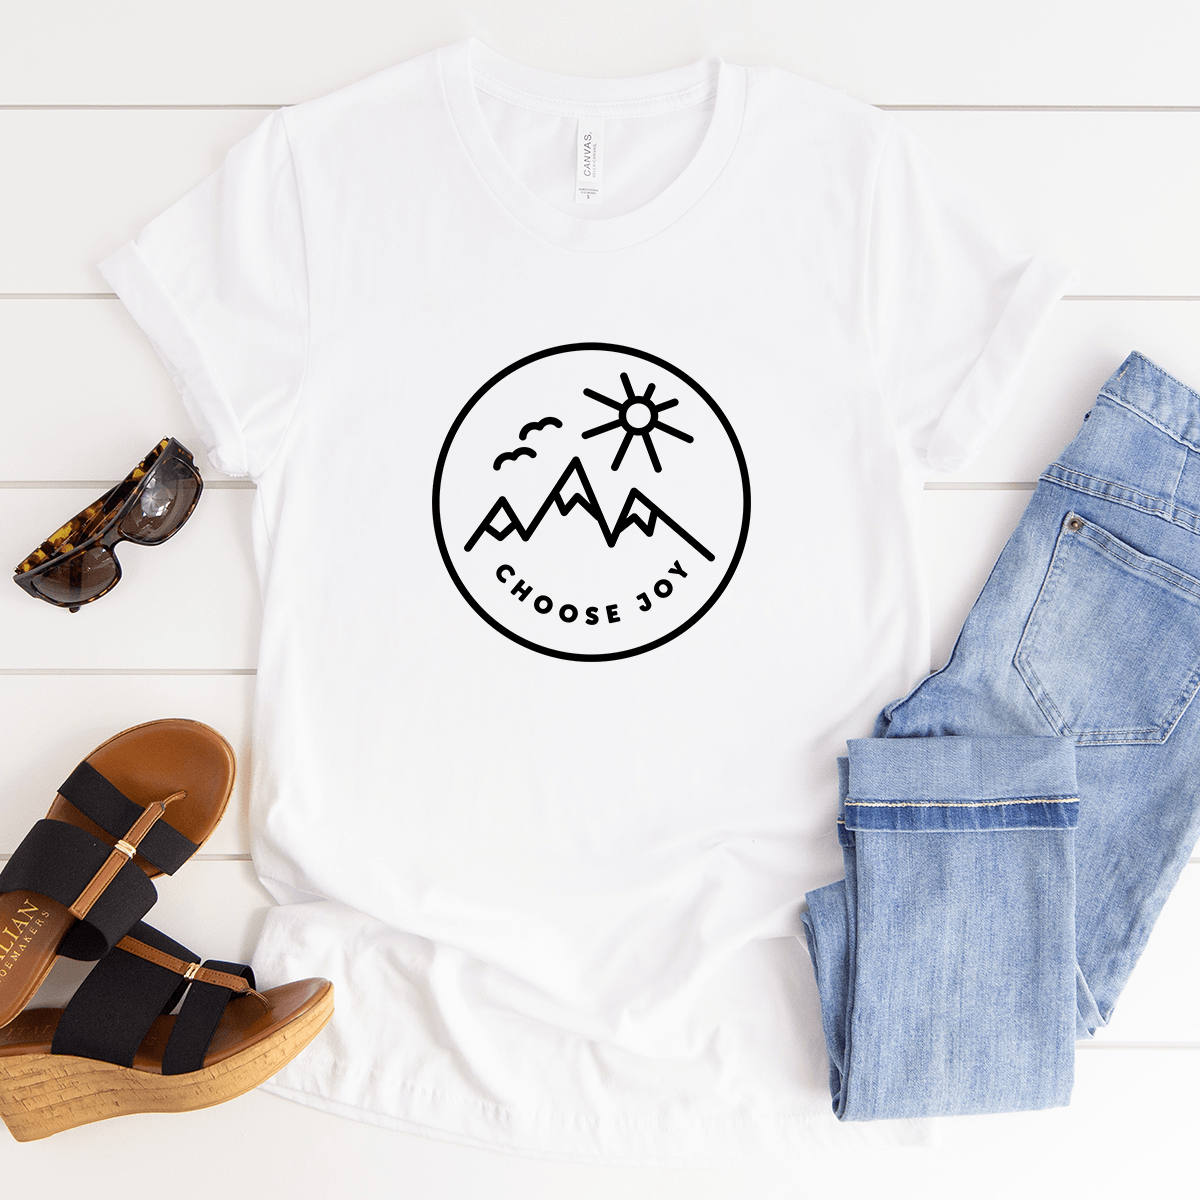 Choose Joy - Bella+Canvas Tee